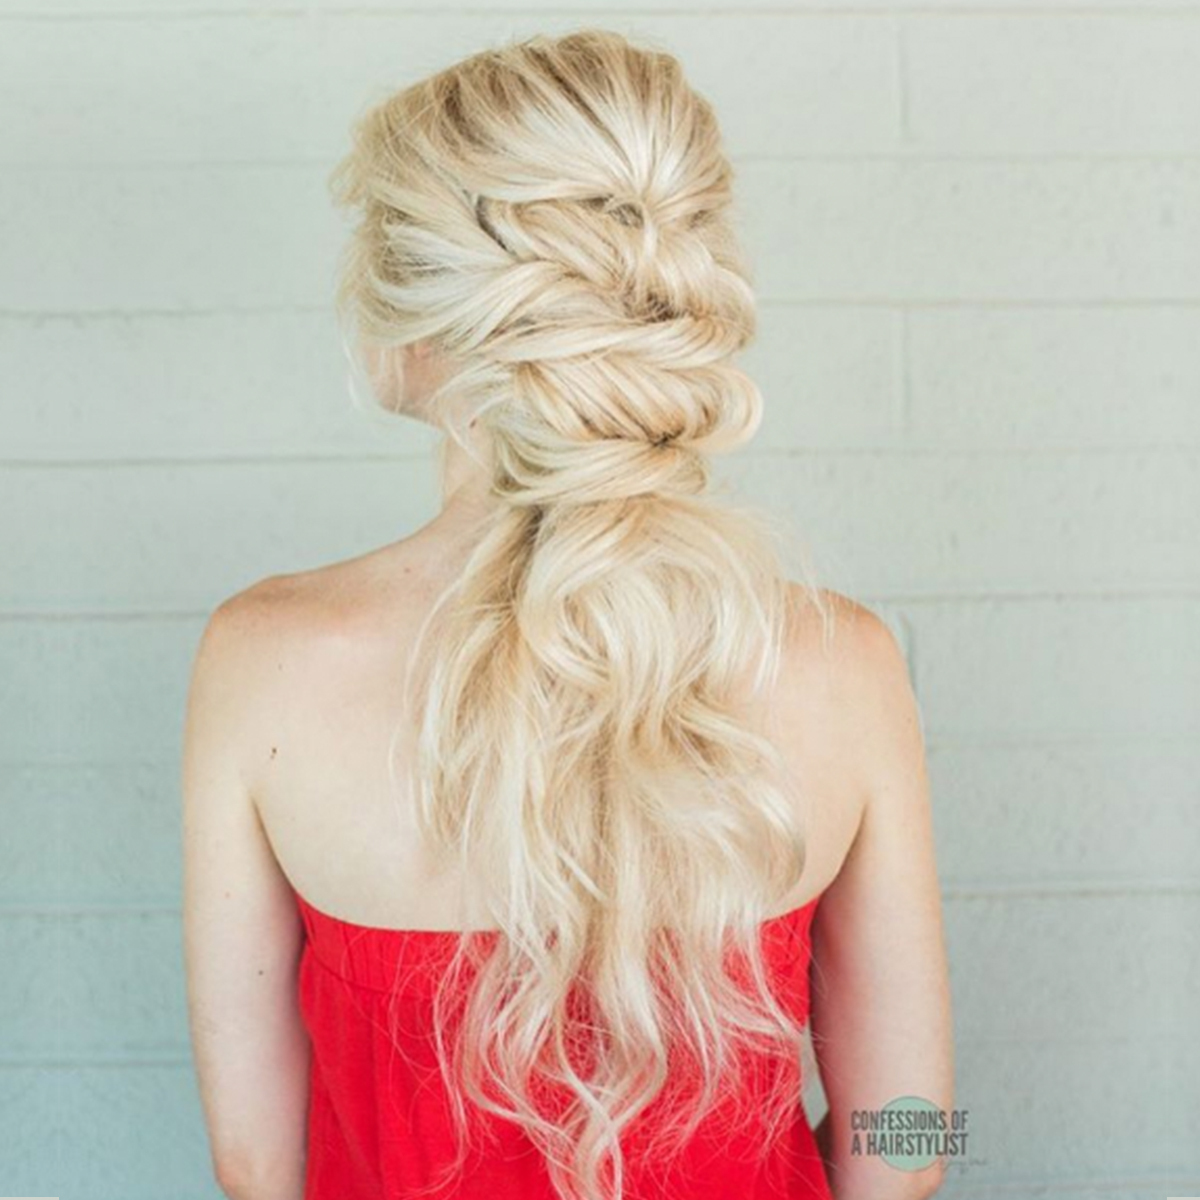 VIDEO HOW-TO: Whimsical Twisted Ponytail by @theconfessionsofahairstylist